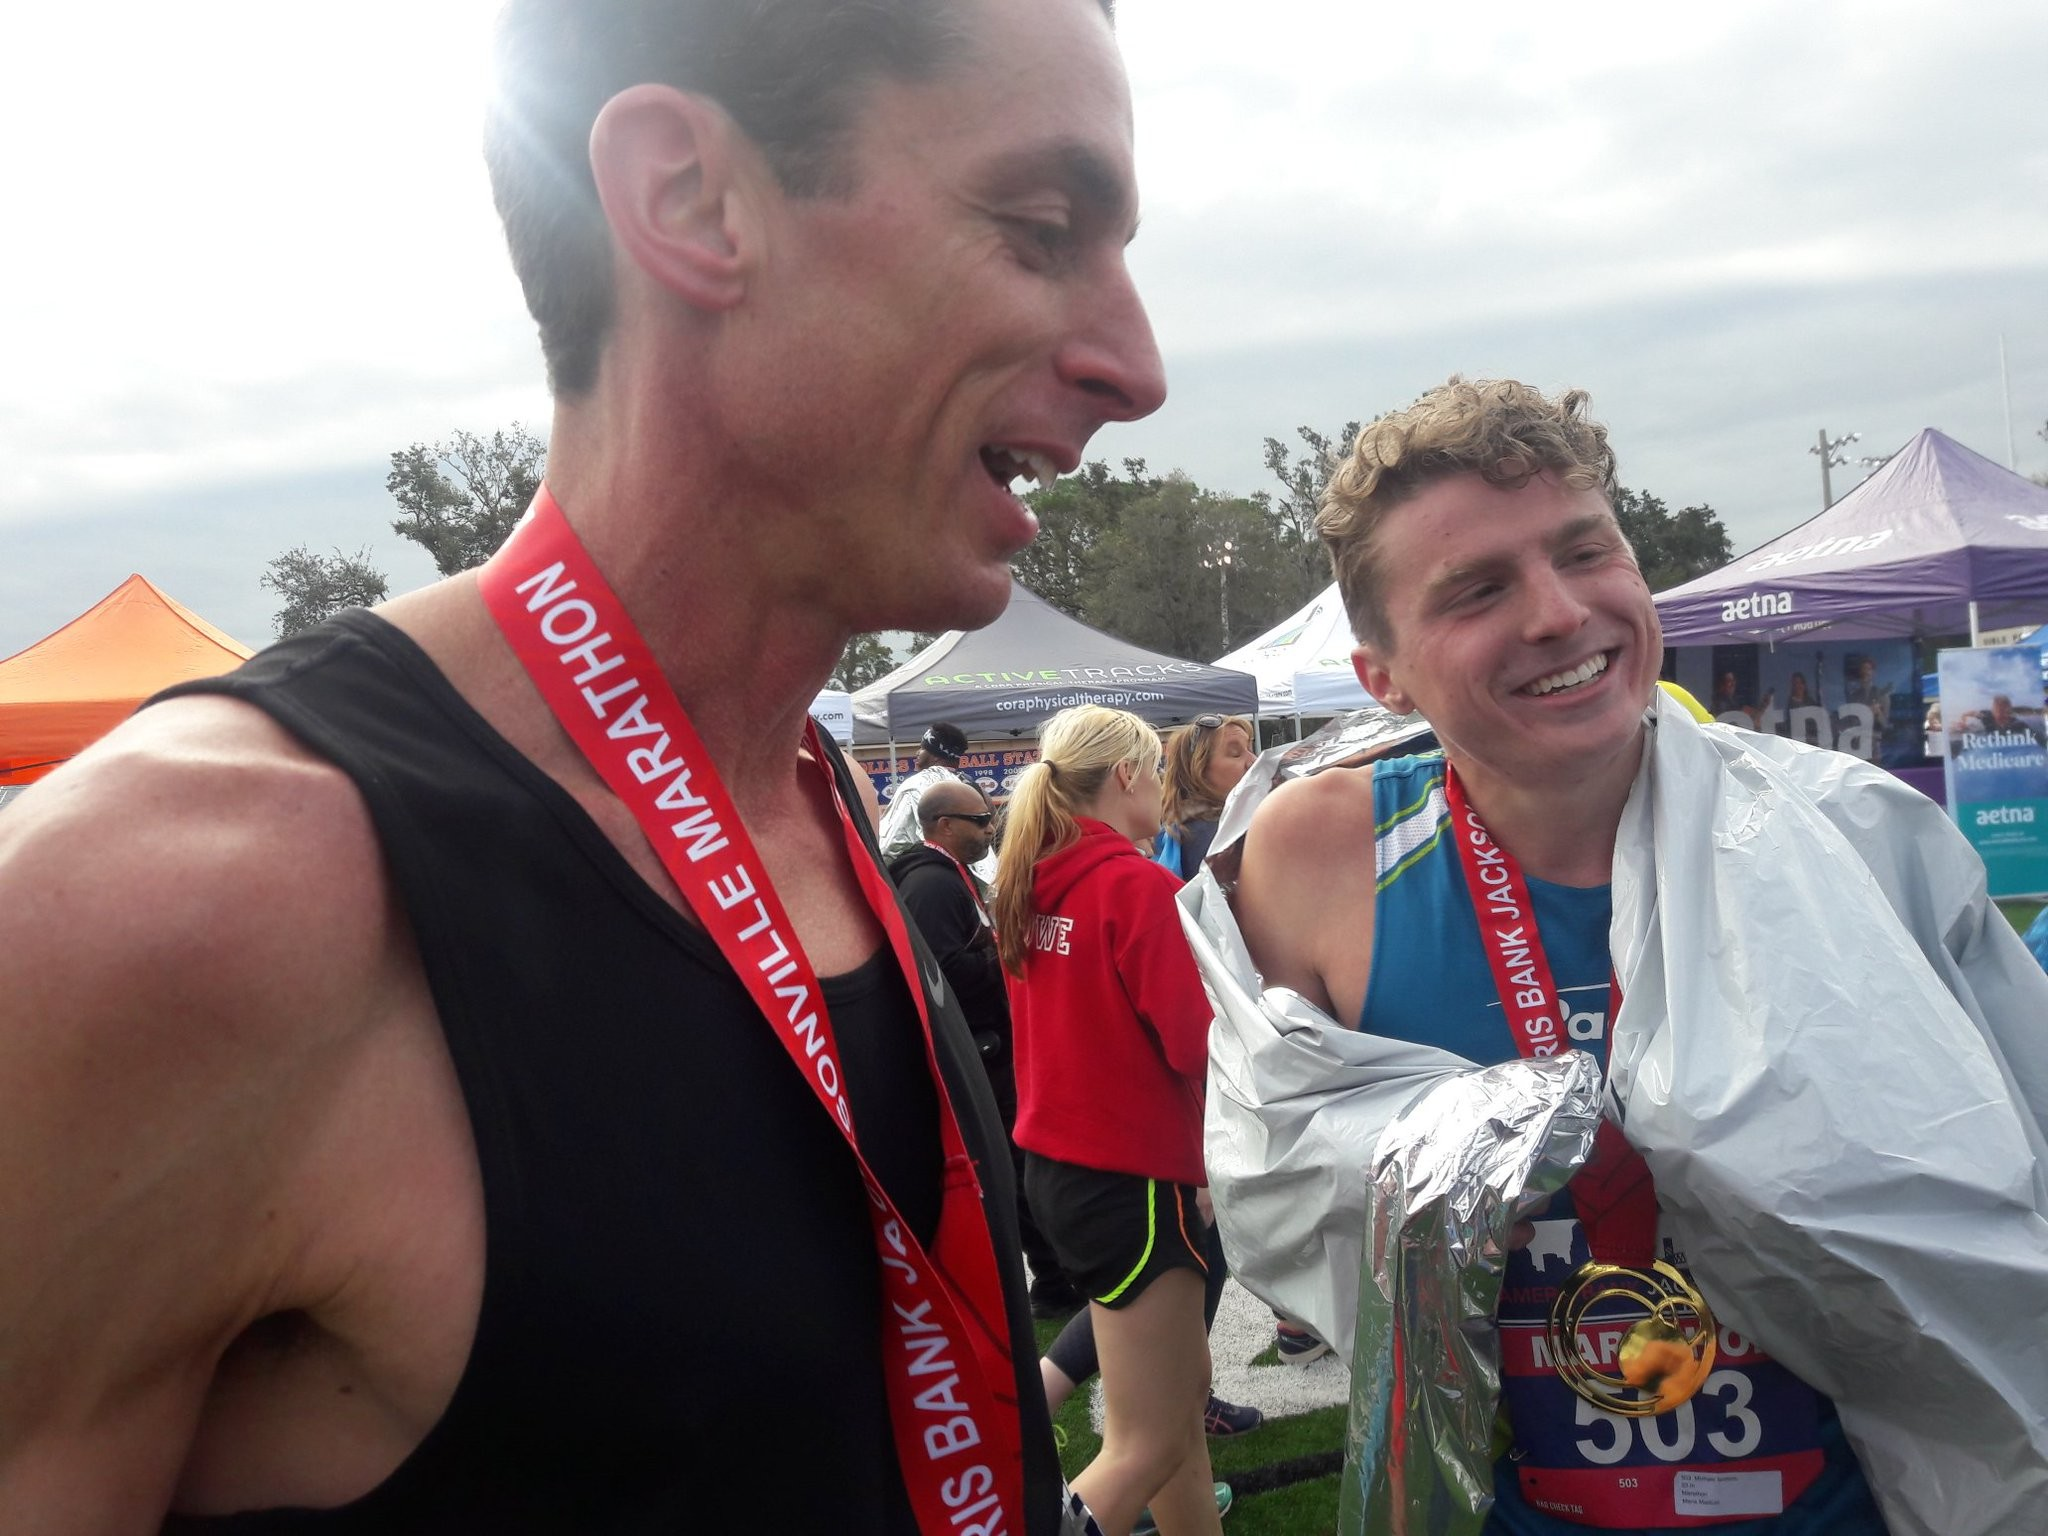 Father Son Place In Top Seven  in Jacksonville Marathon